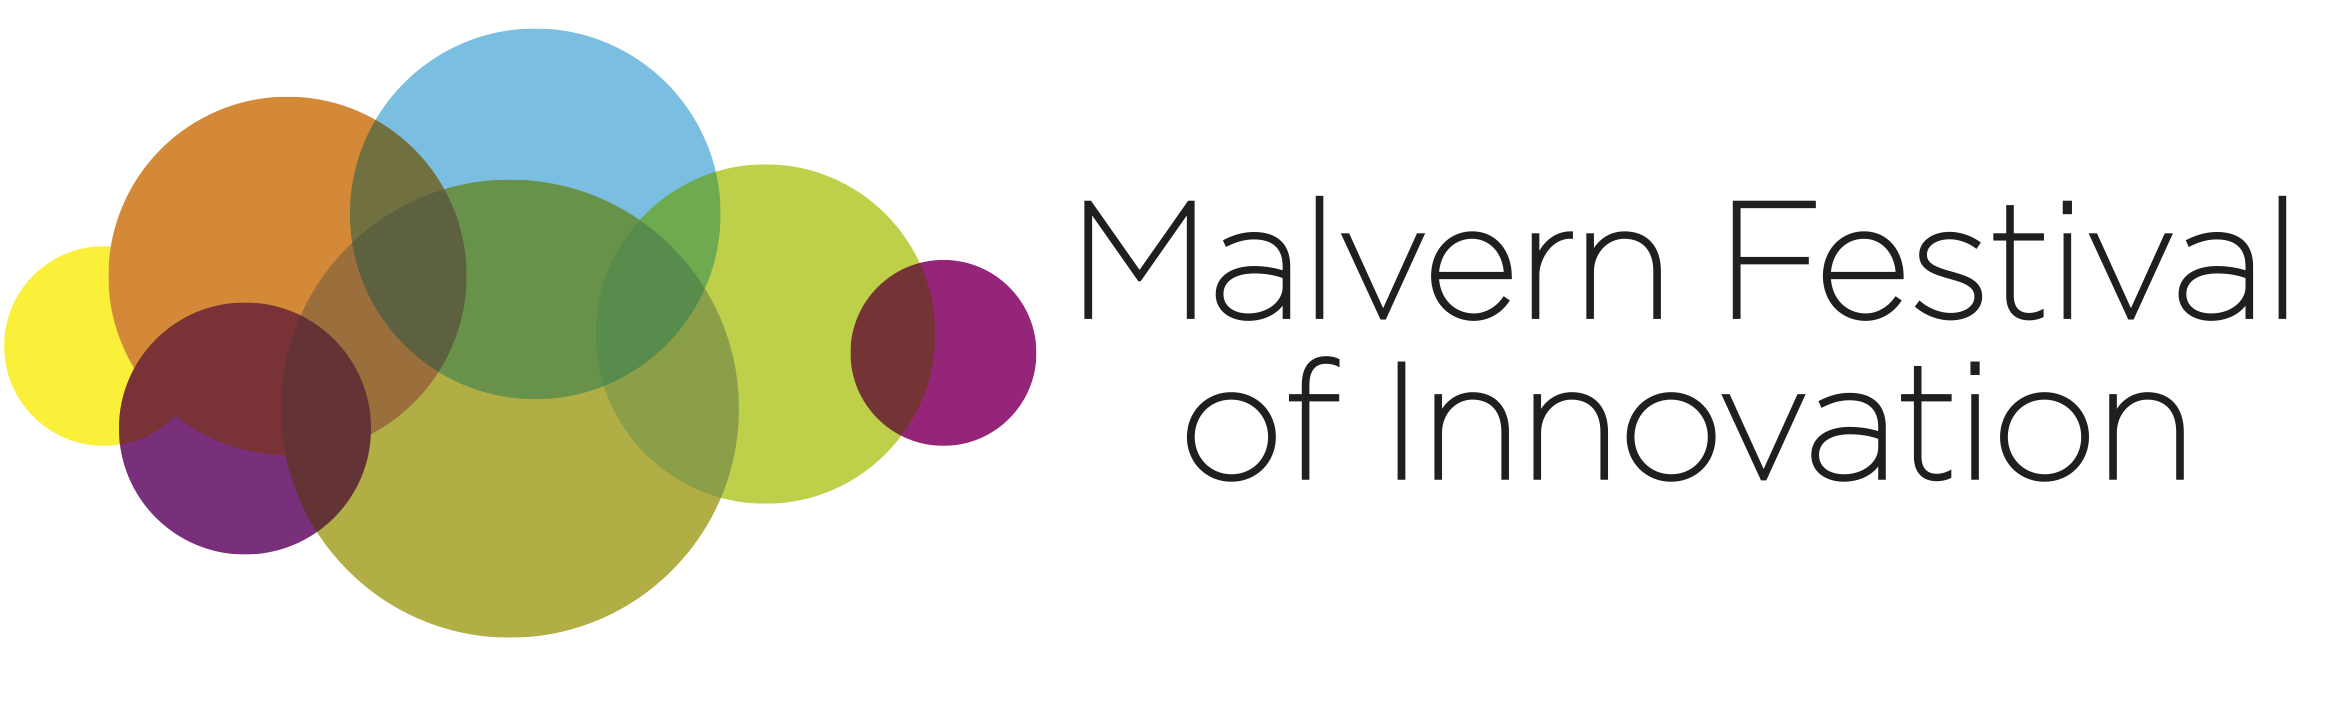 Malvern Festival of Innovation | Science & Technology Comedy Night